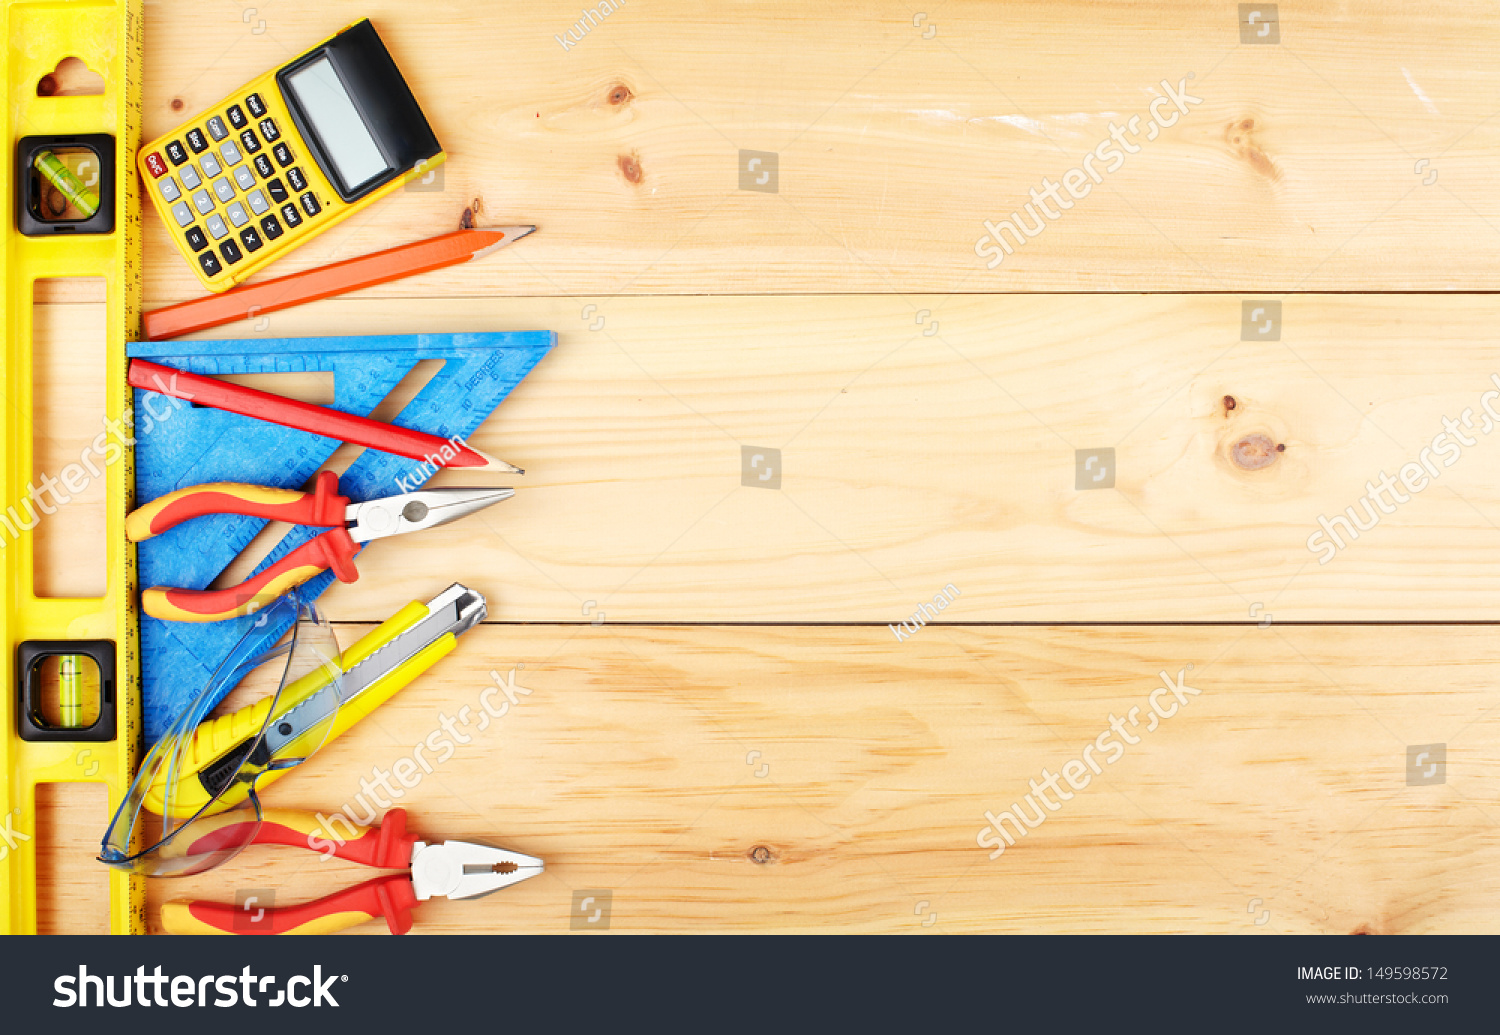 Construction Tools Home House Renovation Concept Stock ...